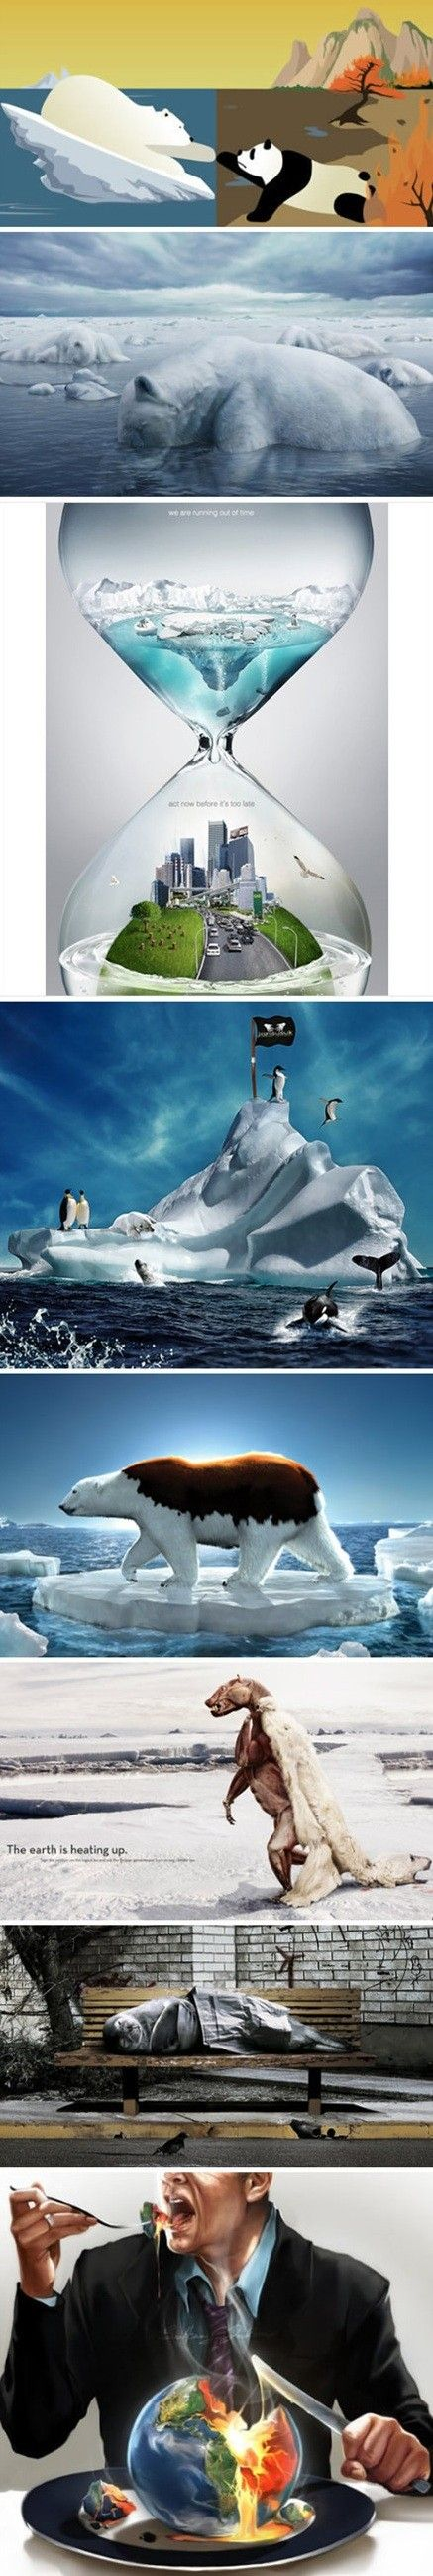 7 creative advertisings about global warming